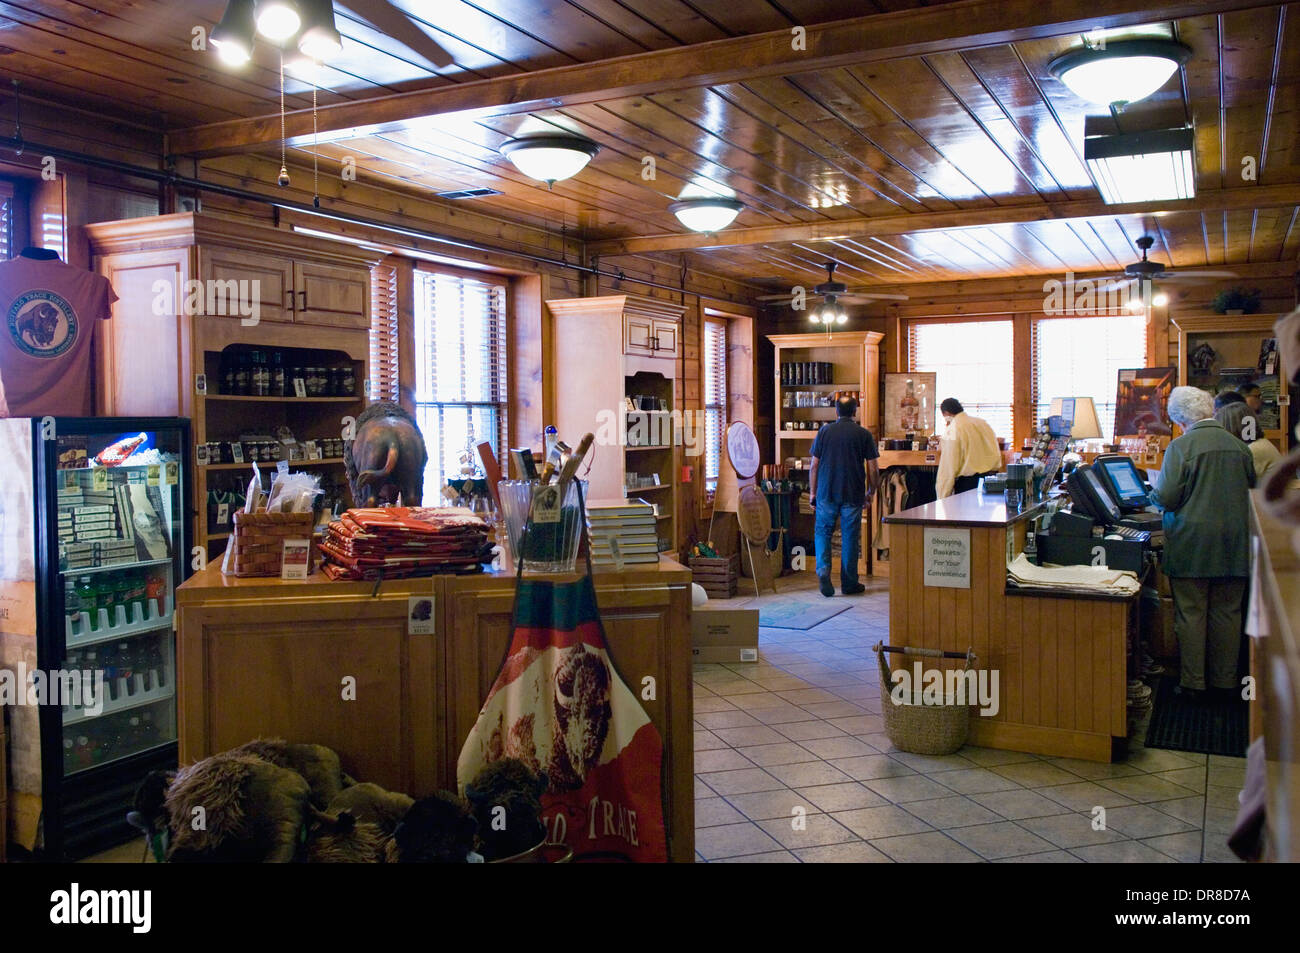 Buffalo Trace Distillery Visitor Center Gift Shop in Frankfort, Kentucky - Stock Image